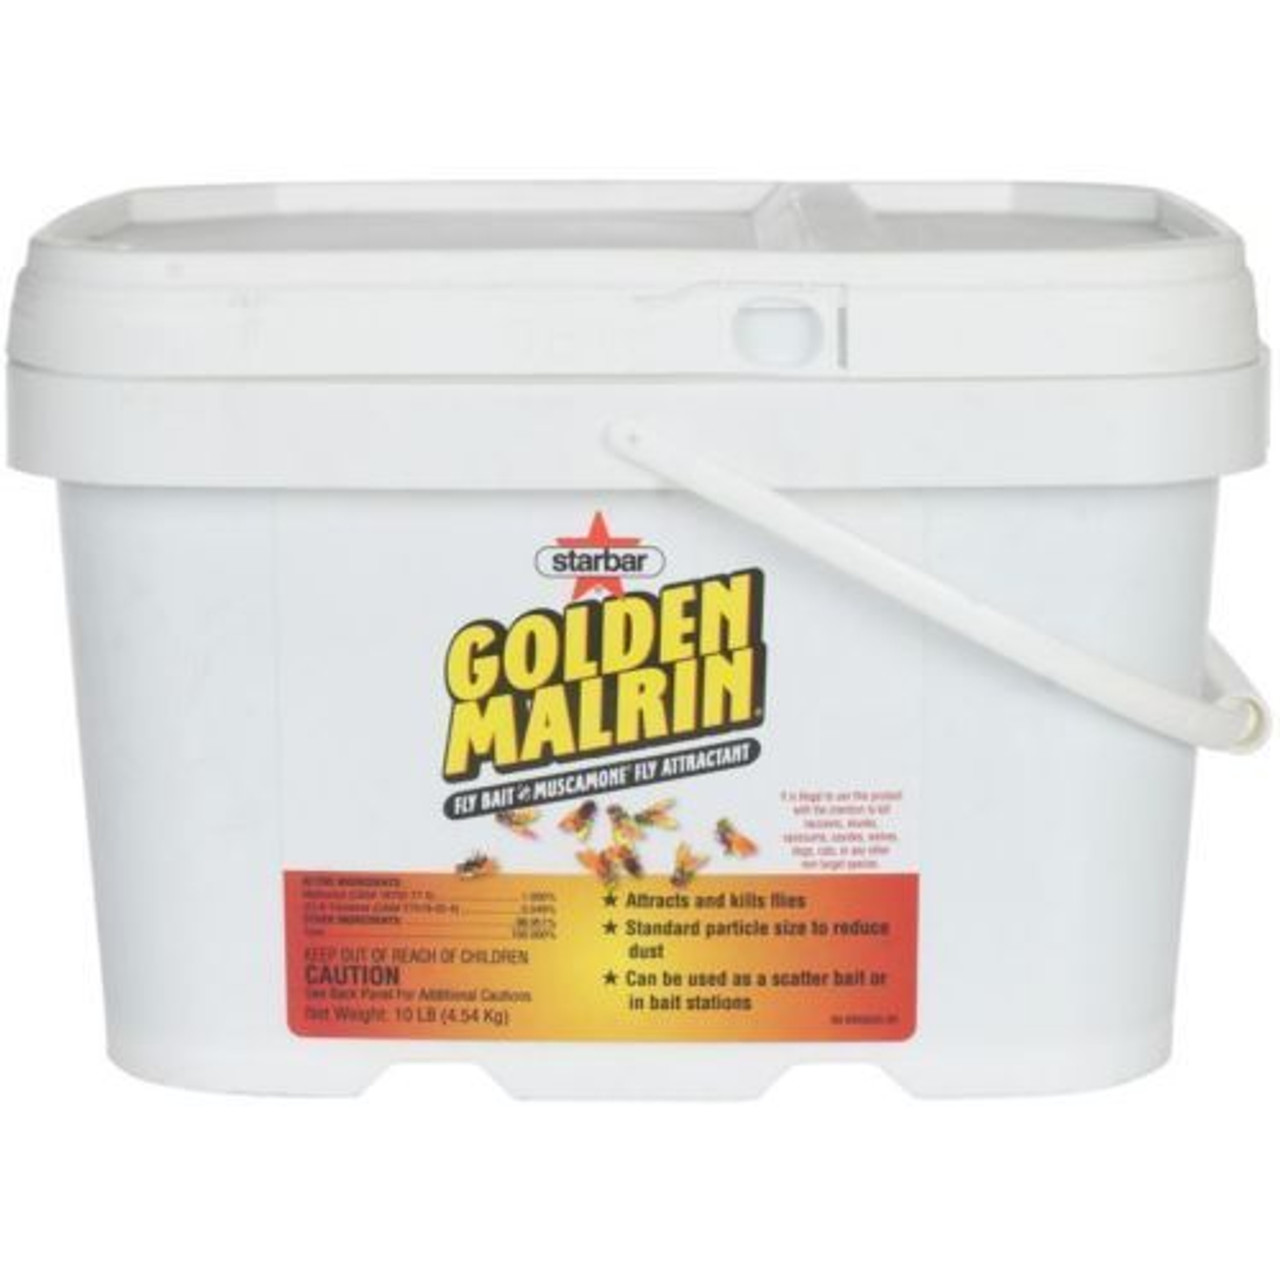 Golden Malrin - 10 LB Bucket Fly Bait - Killer.